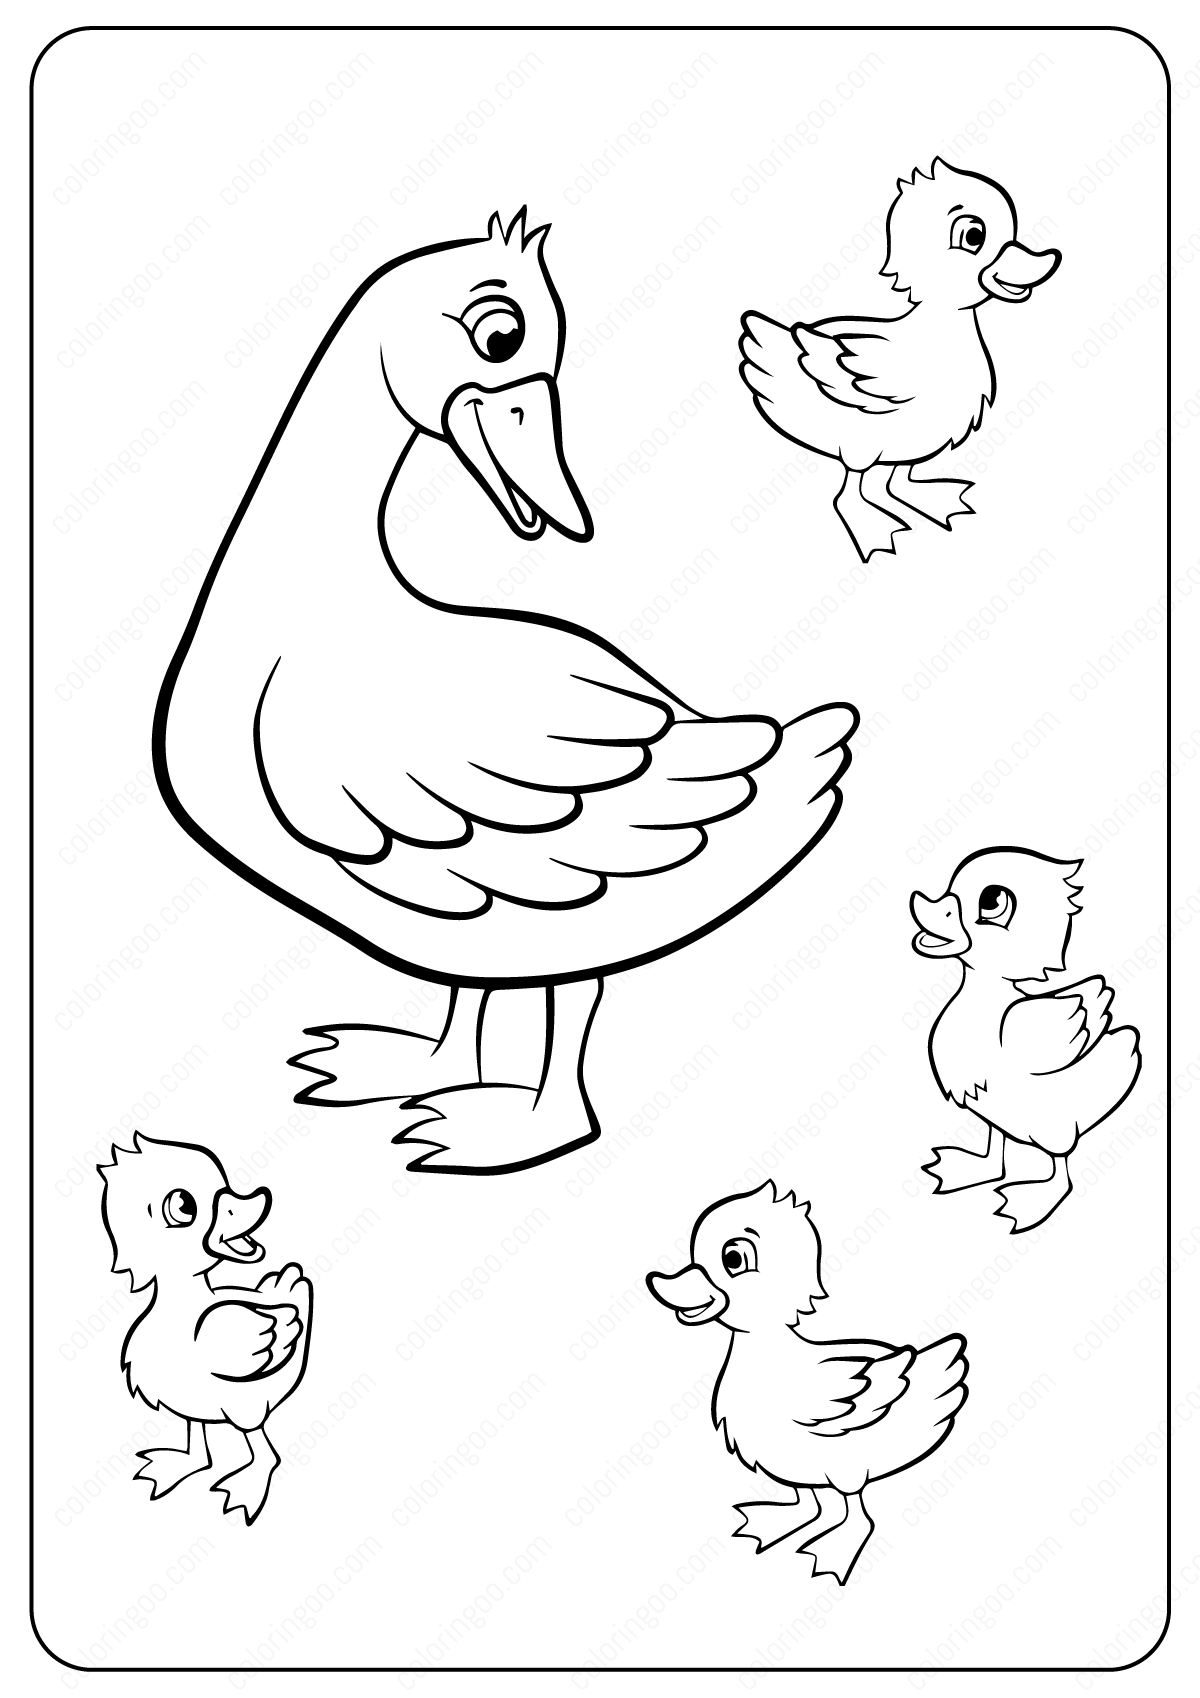 free duck coloring pages craftsactvities and worksheets for preschooltoddler and free duck pages coloring